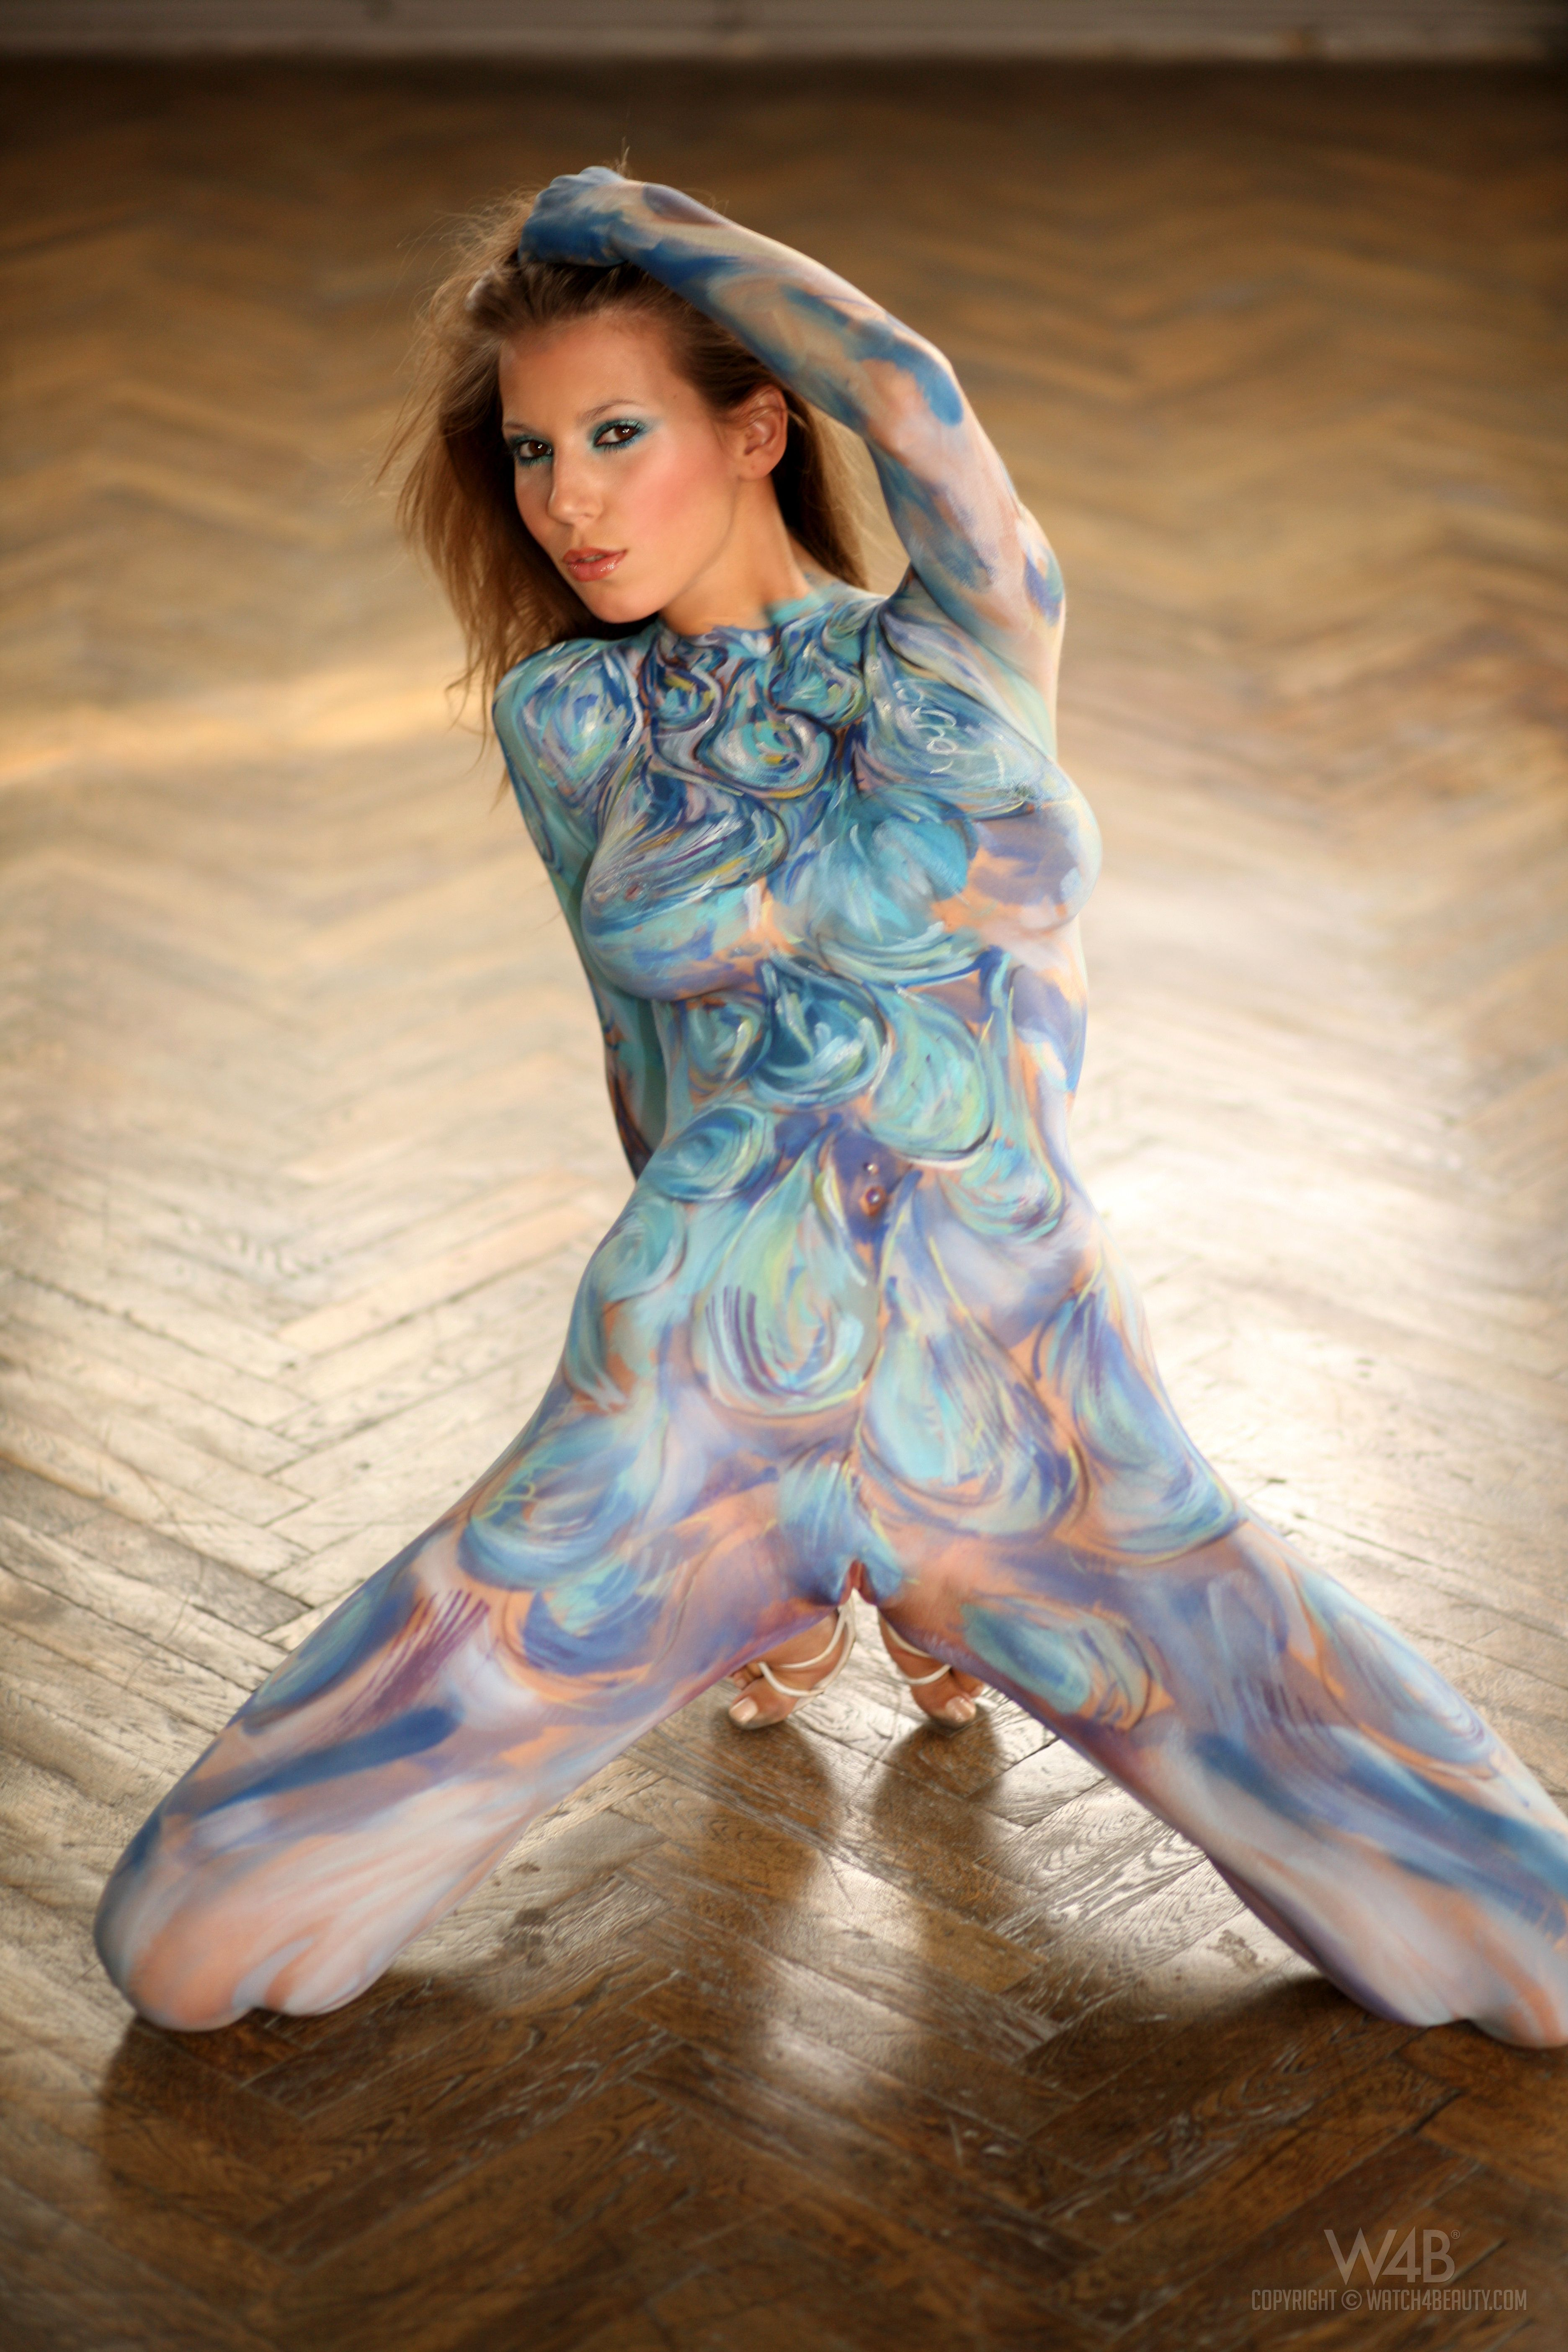 bodypaint356 body art body painting female body